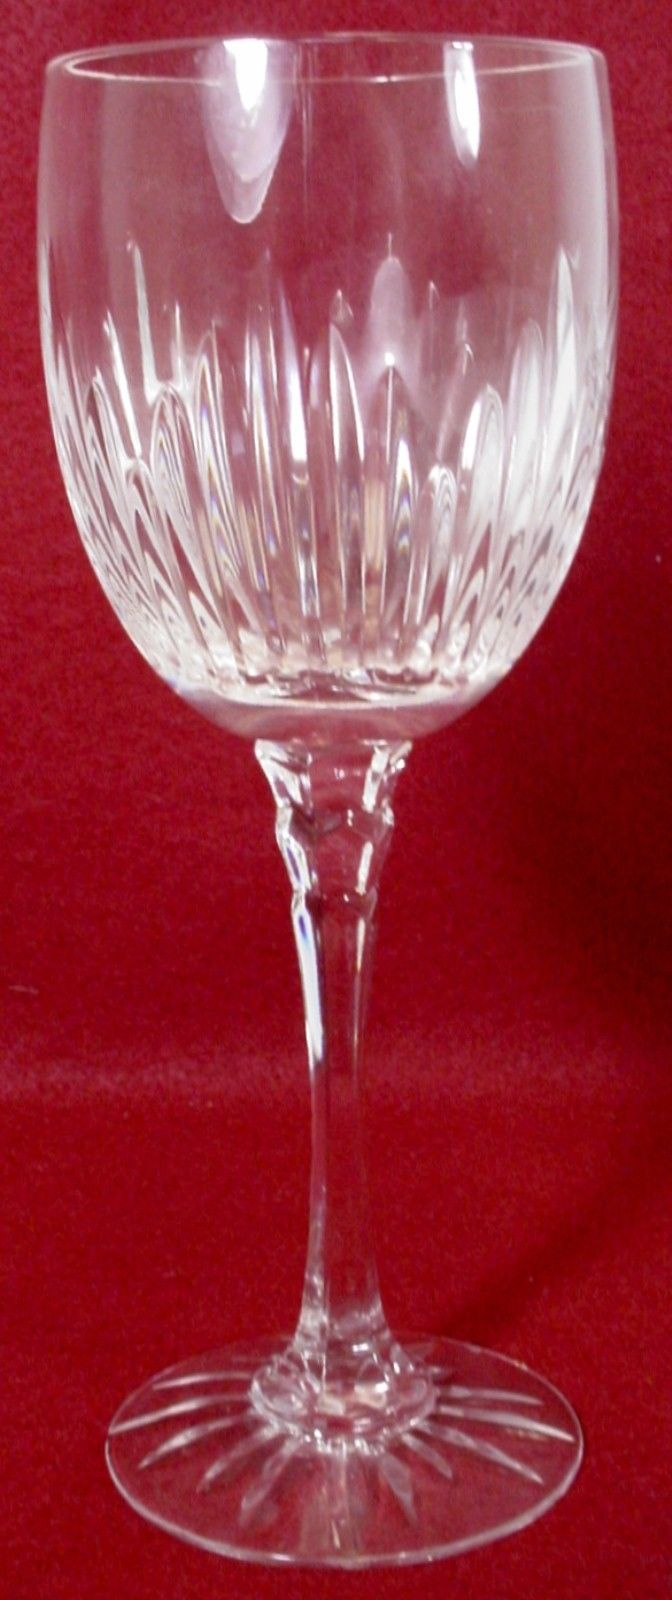 TOWLE crystal MAJESTY cut foot WATER GOBLET or GLASS 8-5/8